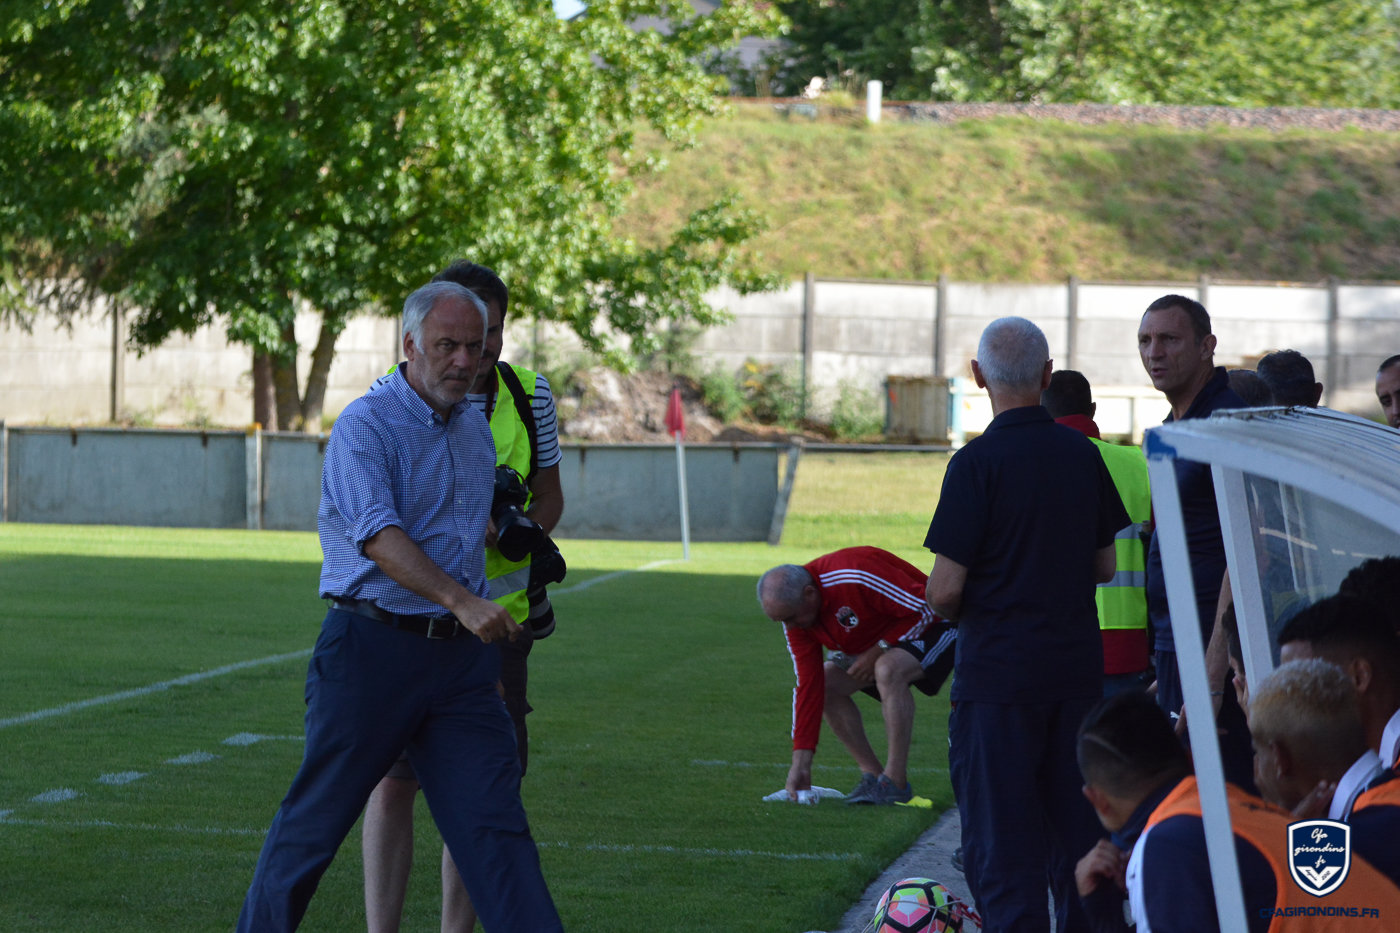 Cfa Girondins : Patrick Battiston - « Déplorable » - Formation Girondins